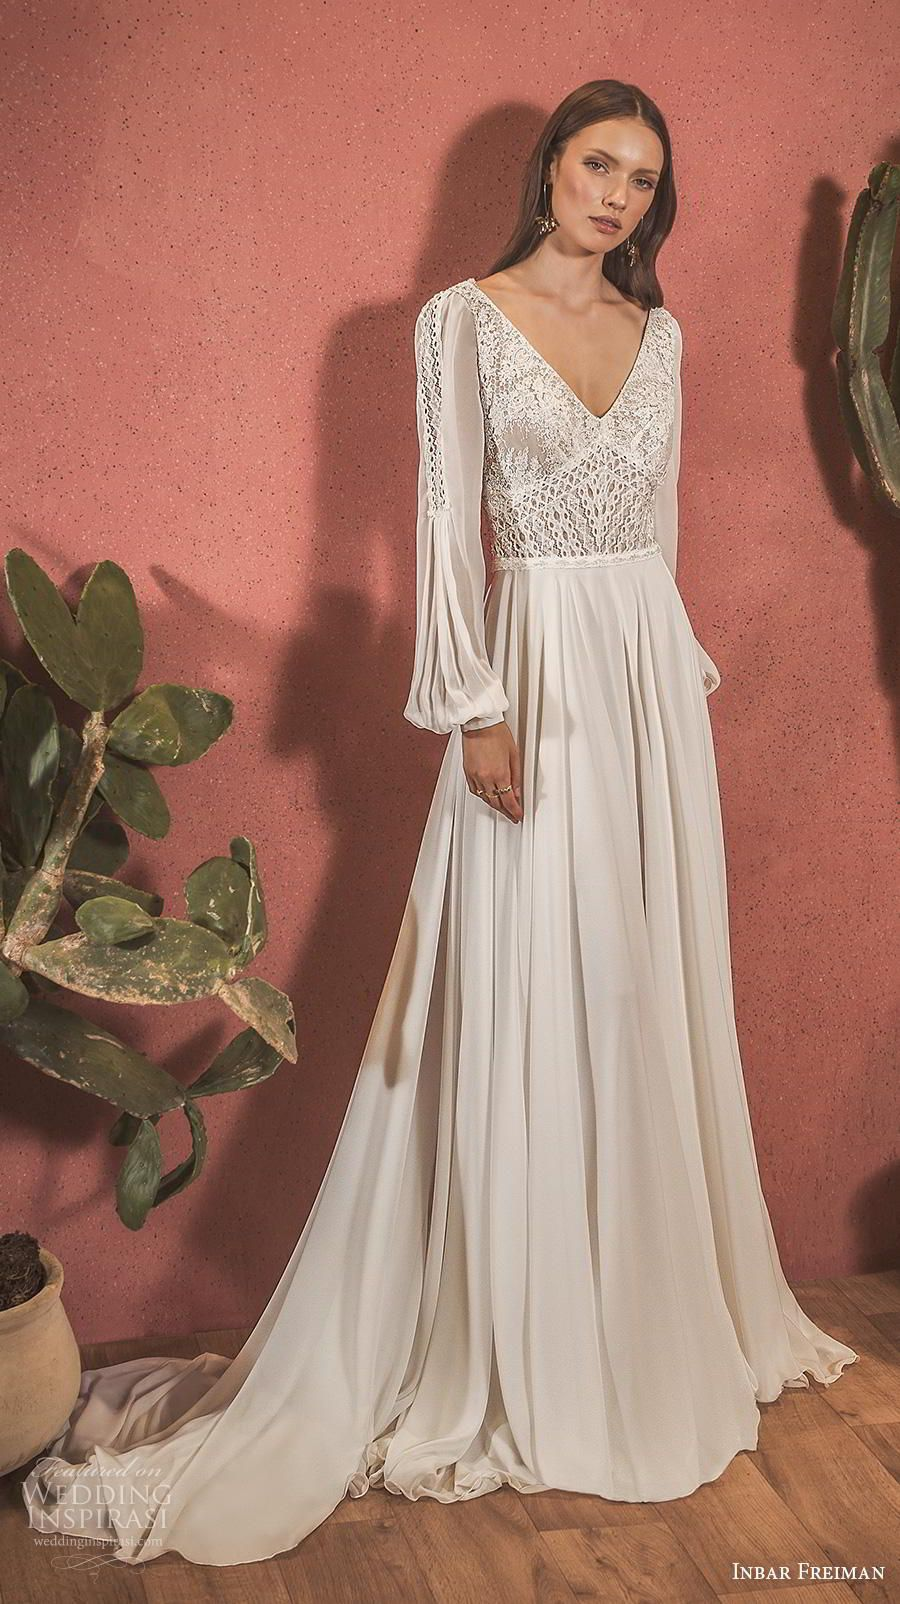 Wedding Bridal Shops Lace Dresses Charme Gaby Bridal Gown Boutique  Lovely Bride Designers Bliss Bridal Prices Cheap Bridal Boutiques Near Me Free Shipping